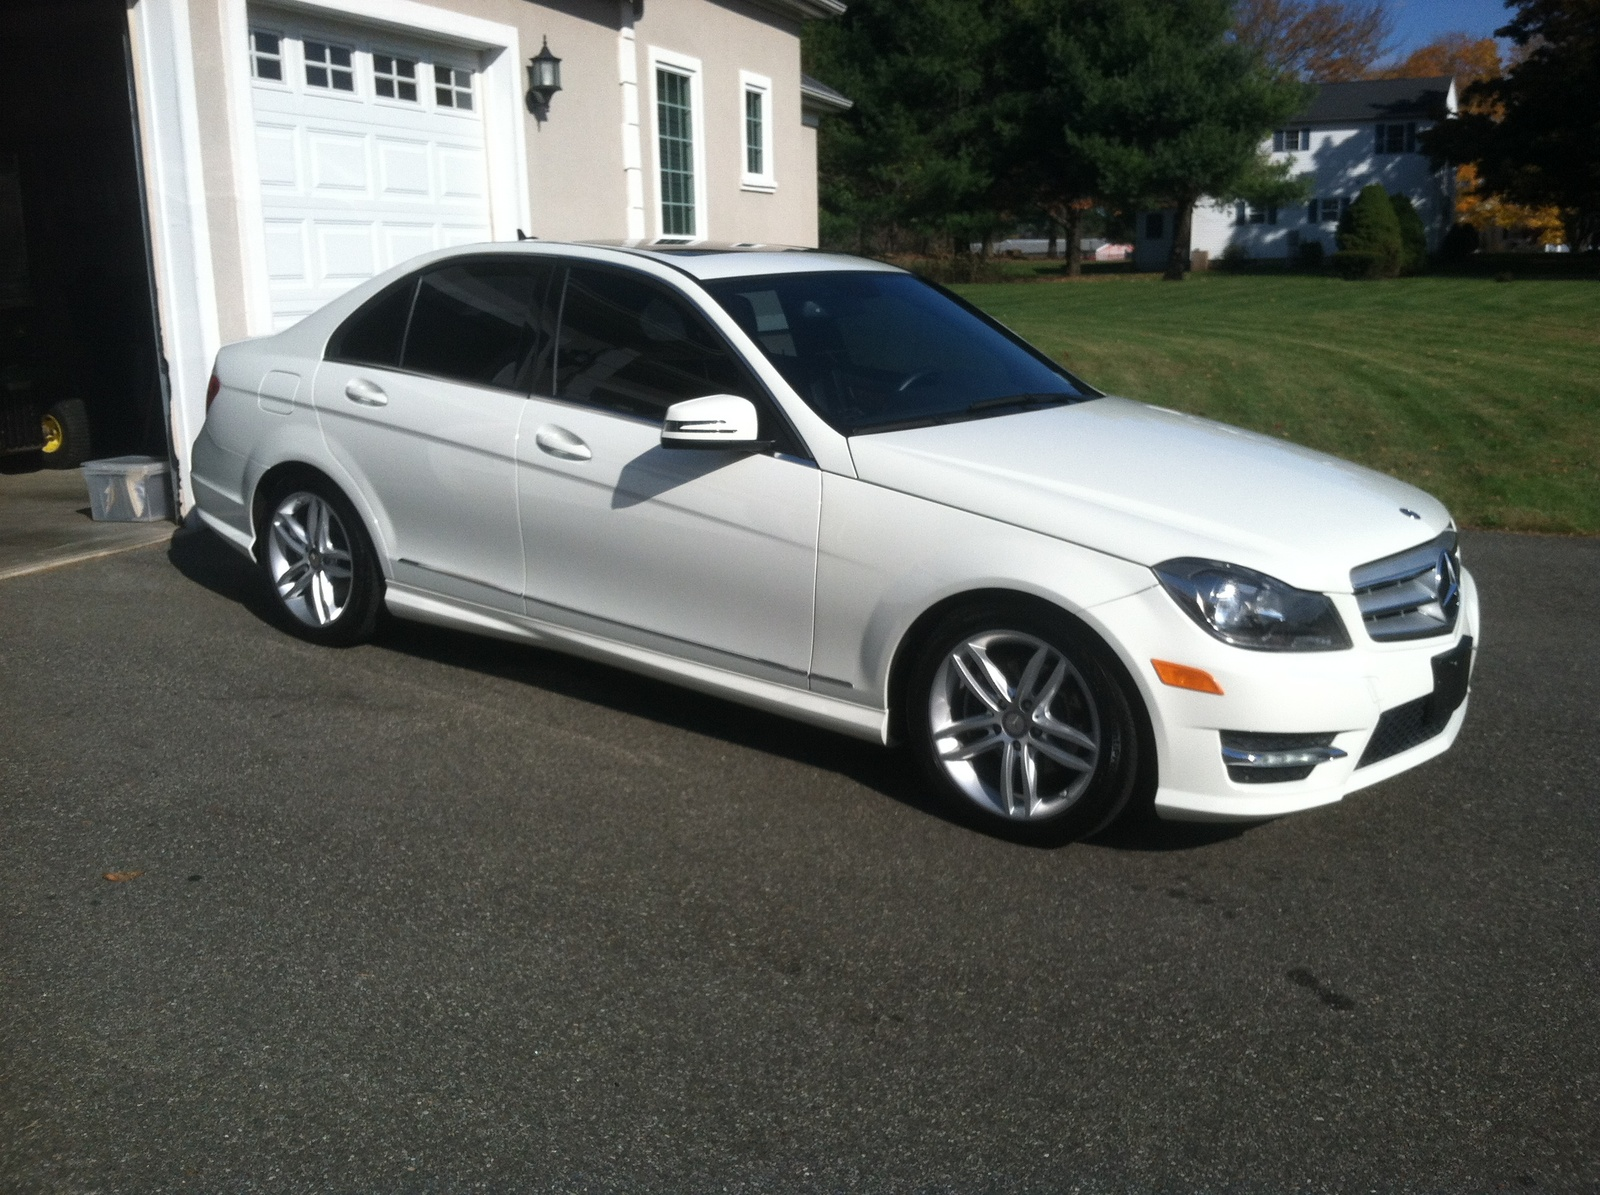 2012 mercedes benz c class pictures cargurus for 2012 mercedes benz c350 price